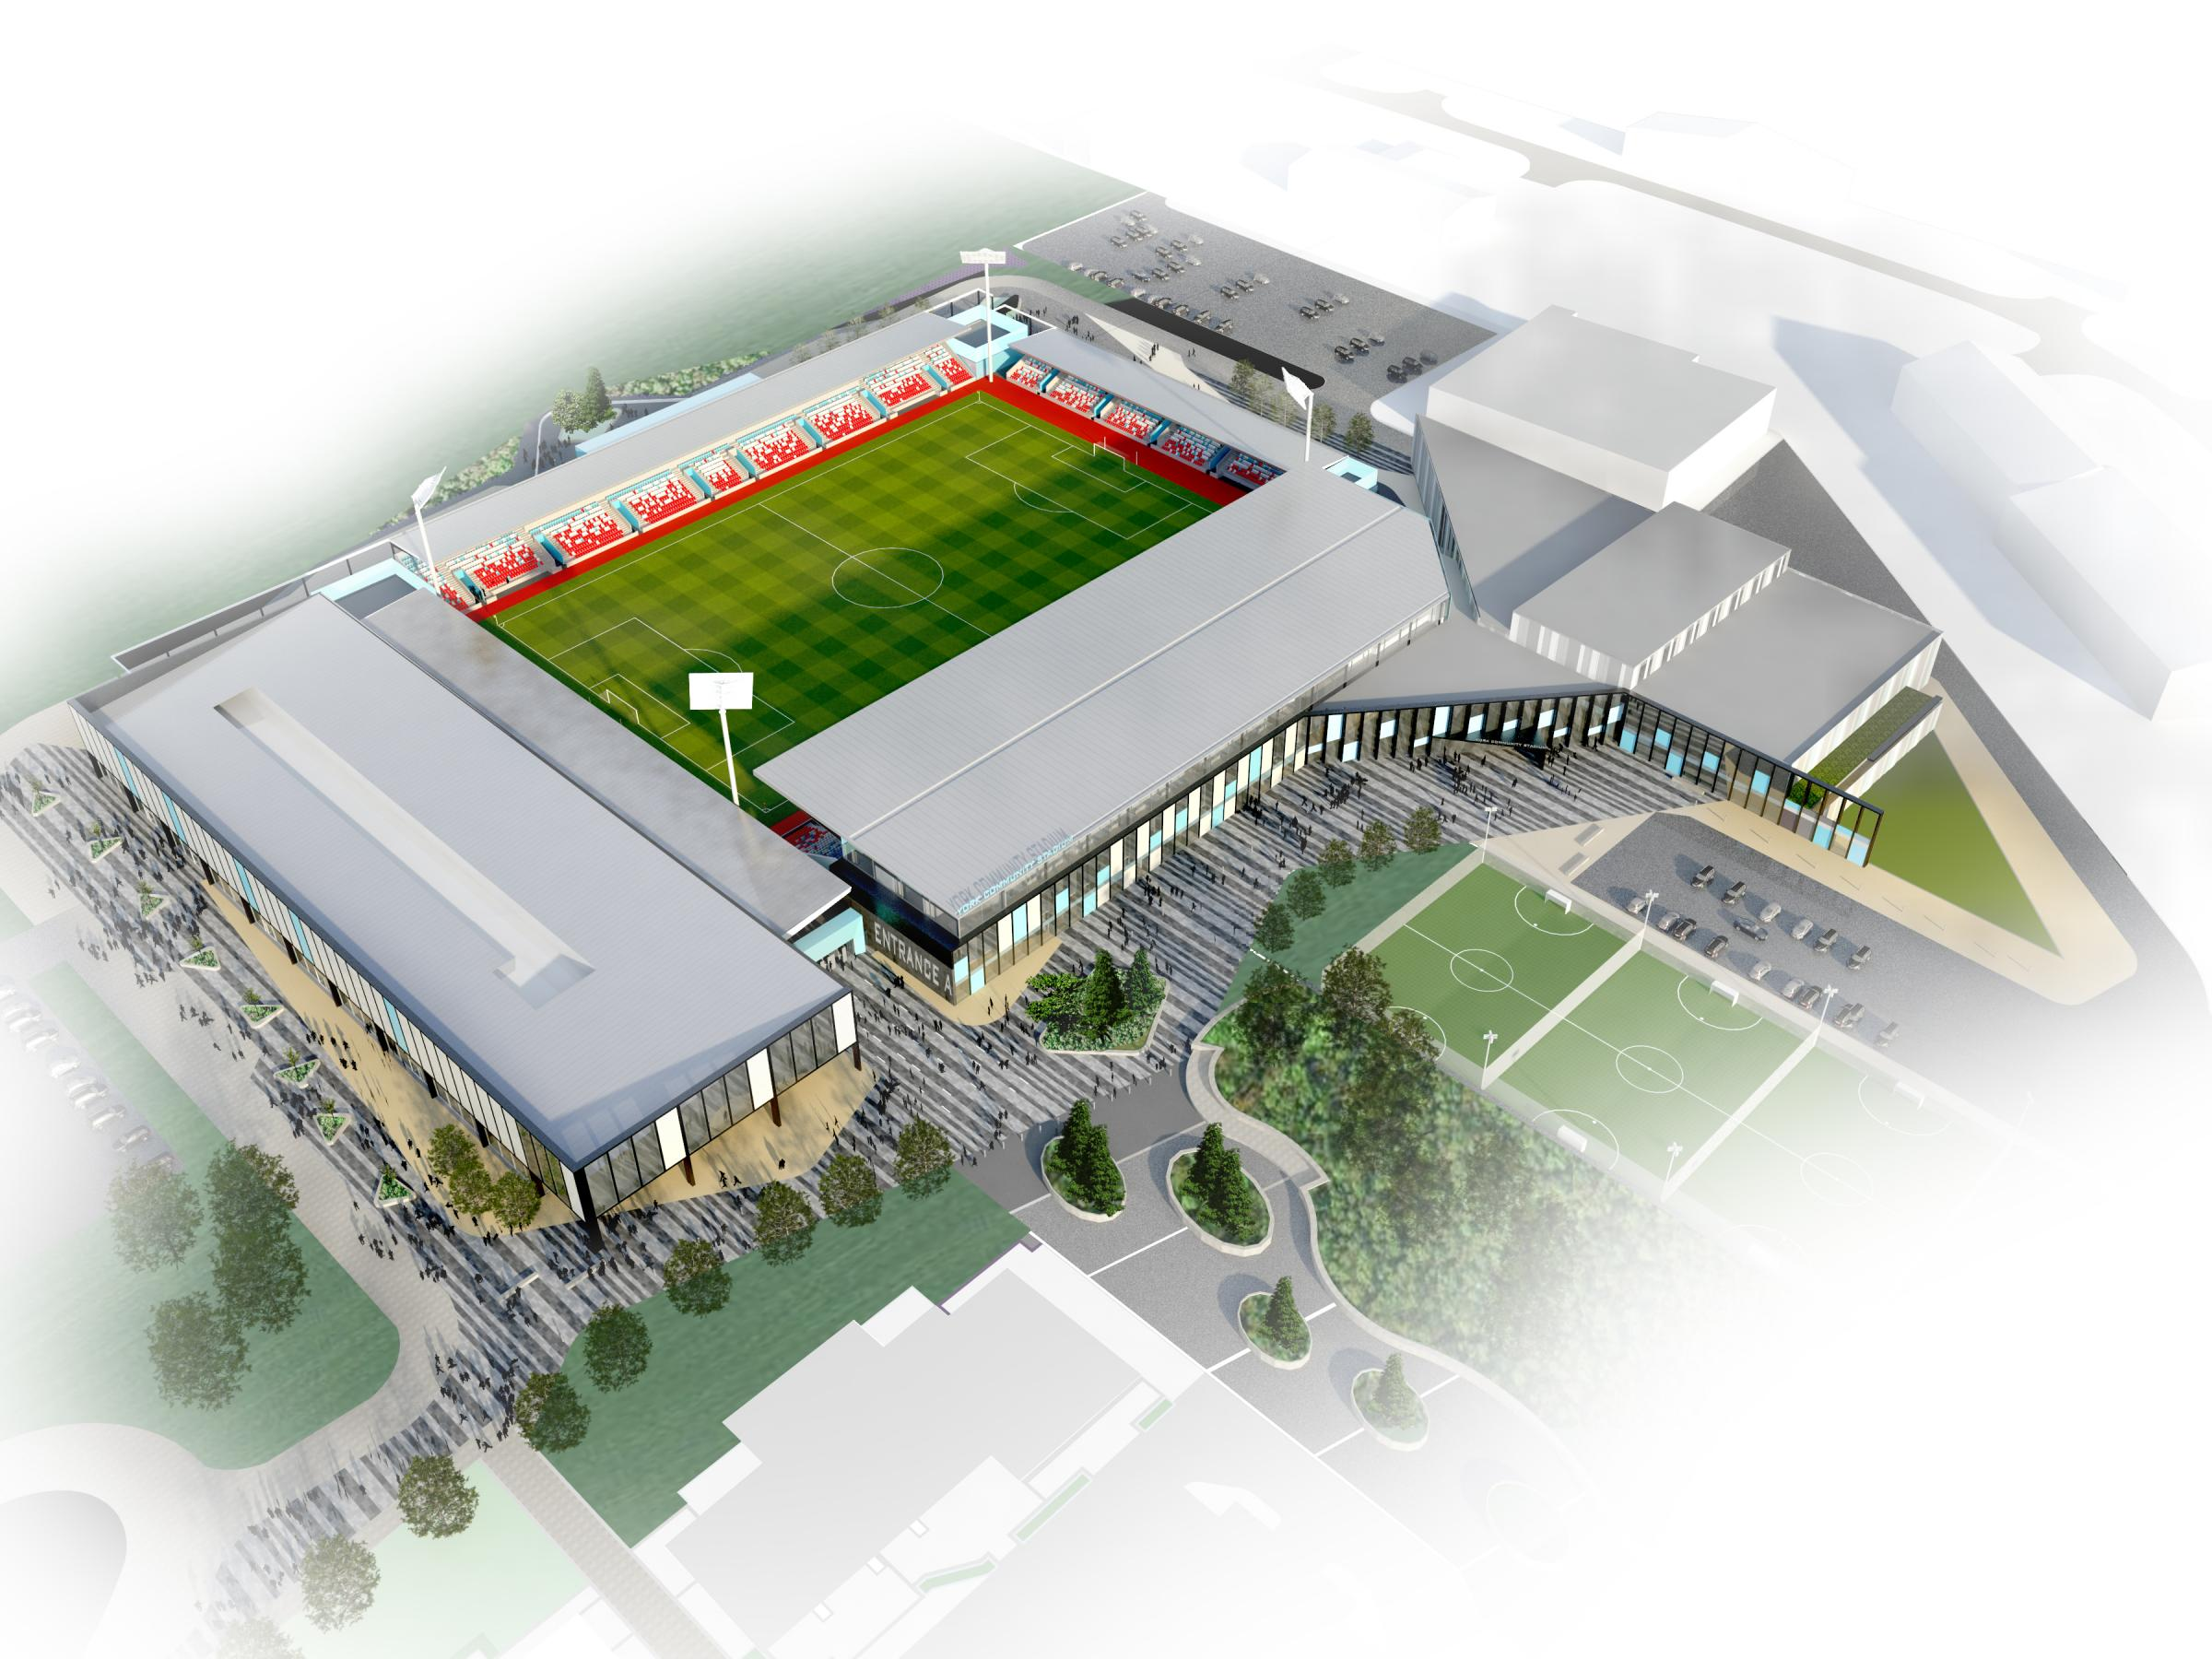 York community stadium plan unveiled - building to start next spring